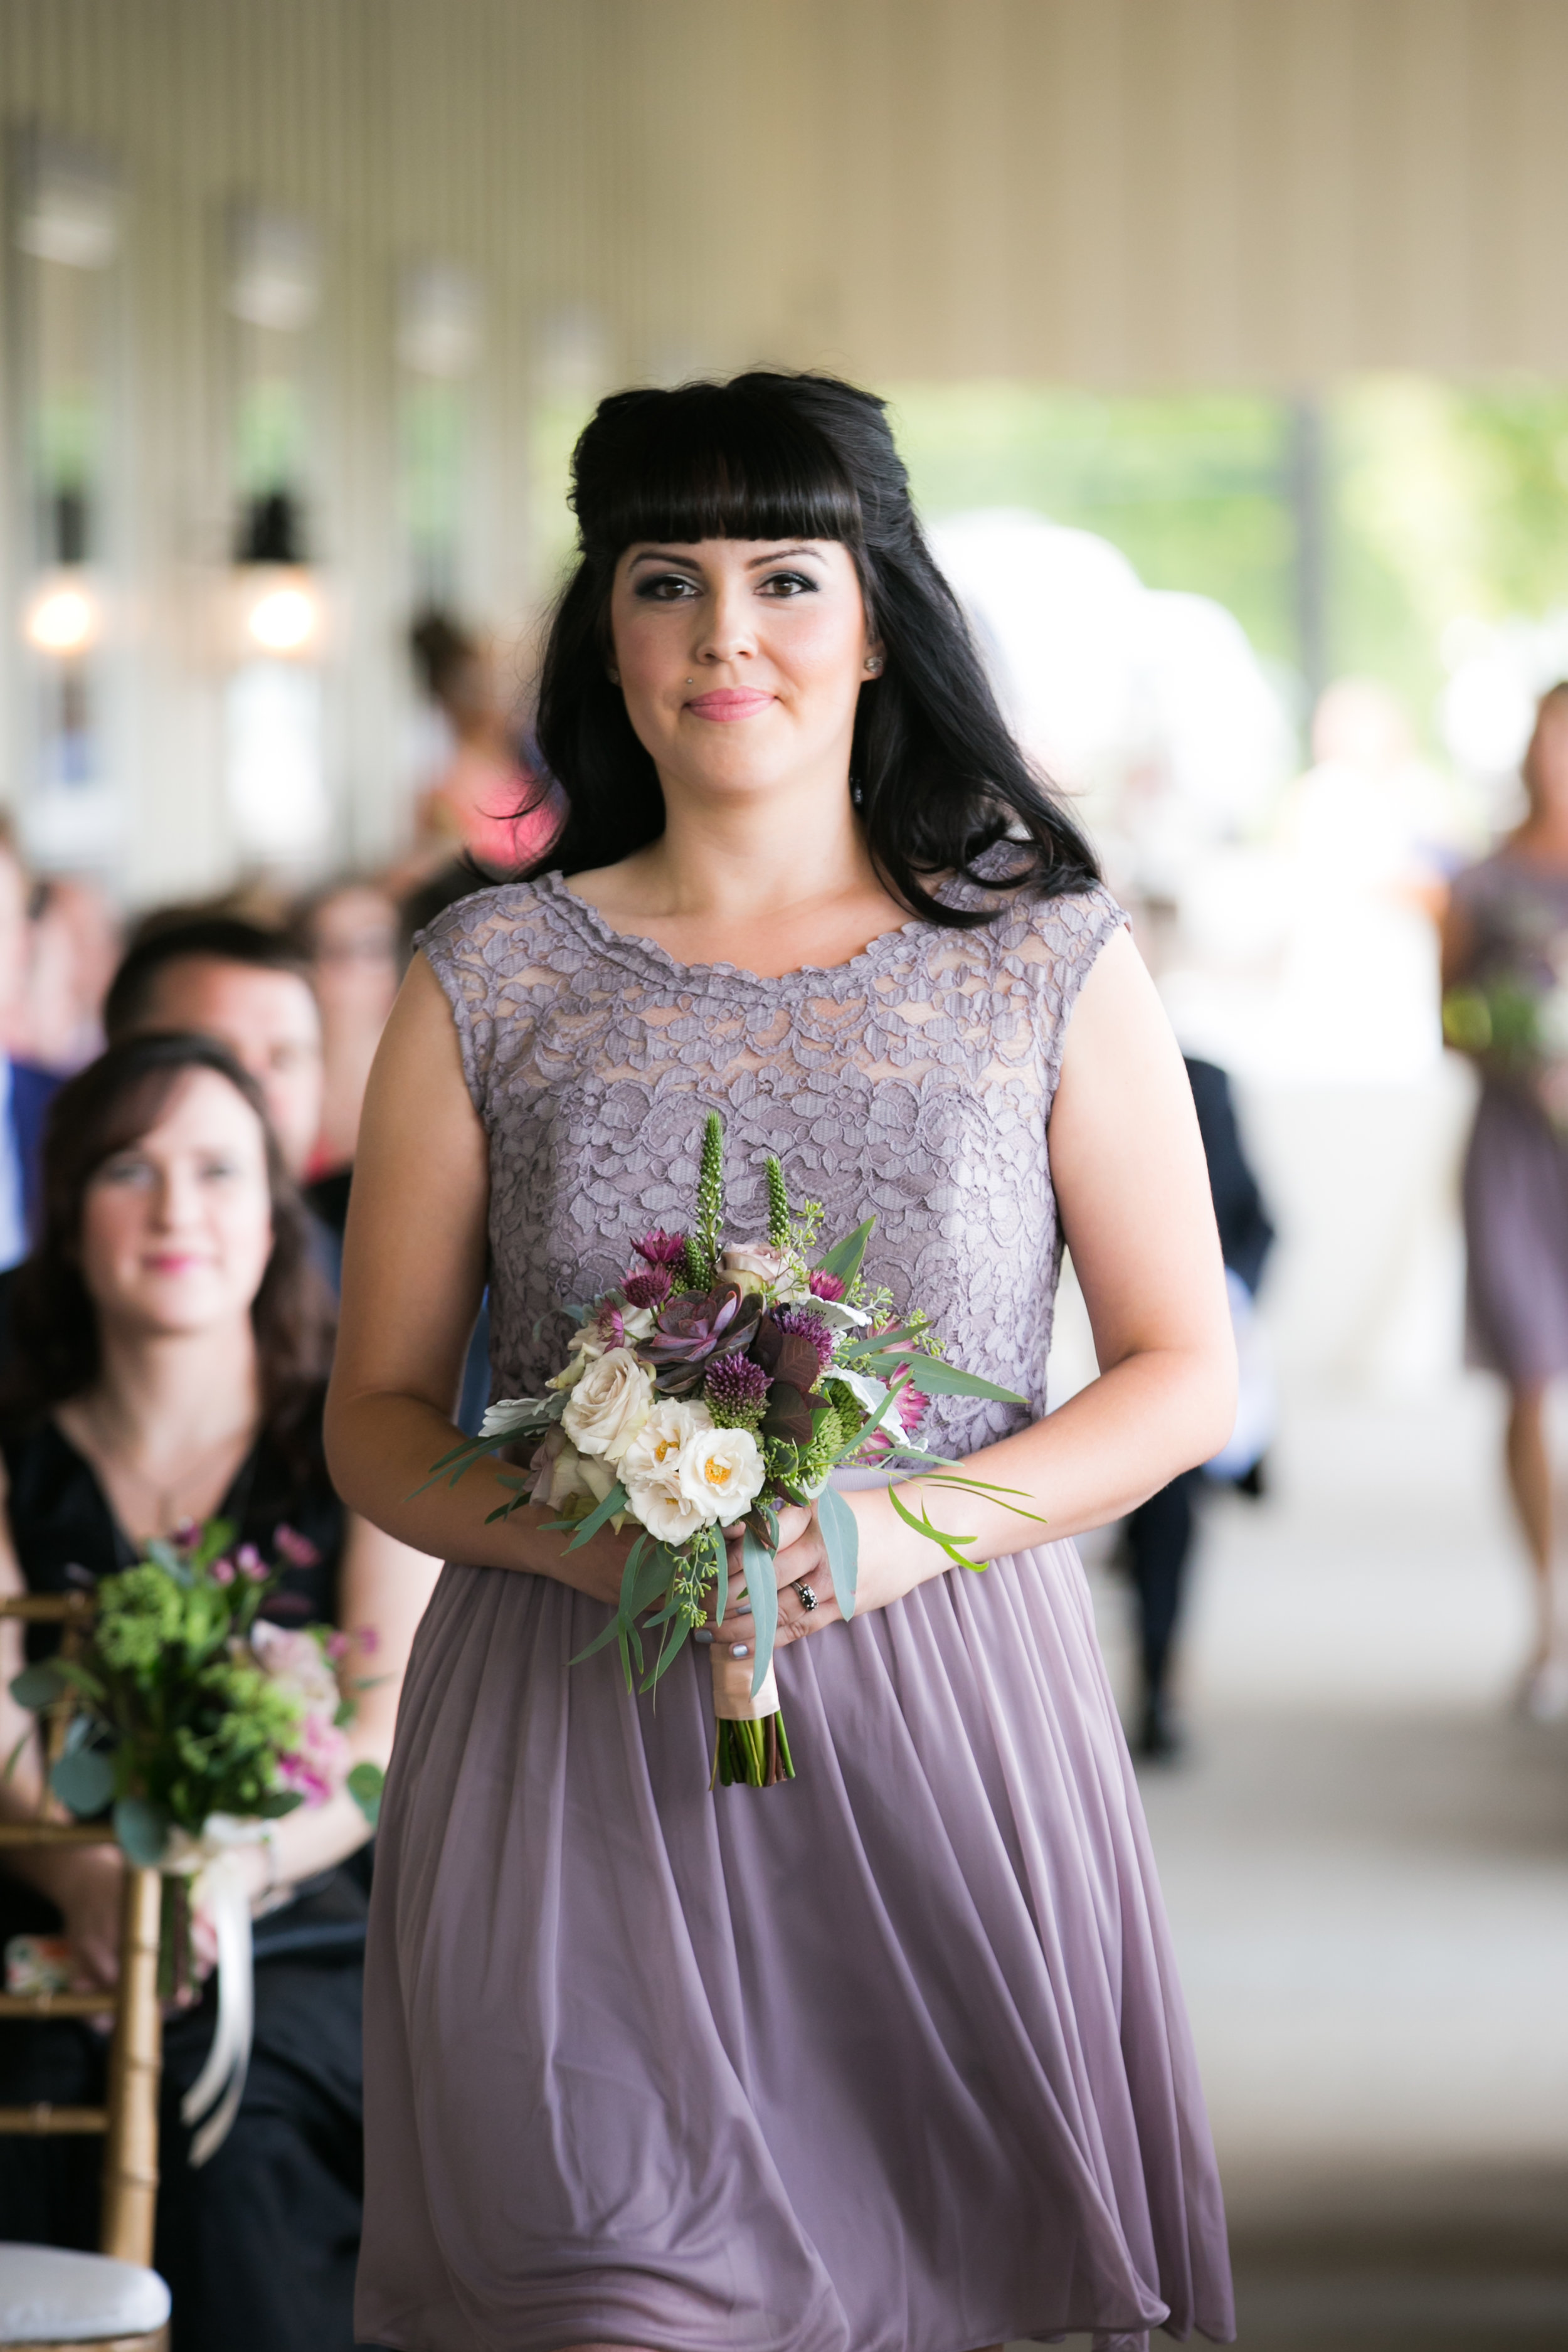 Bridesmaid in Dusty Purple Dress